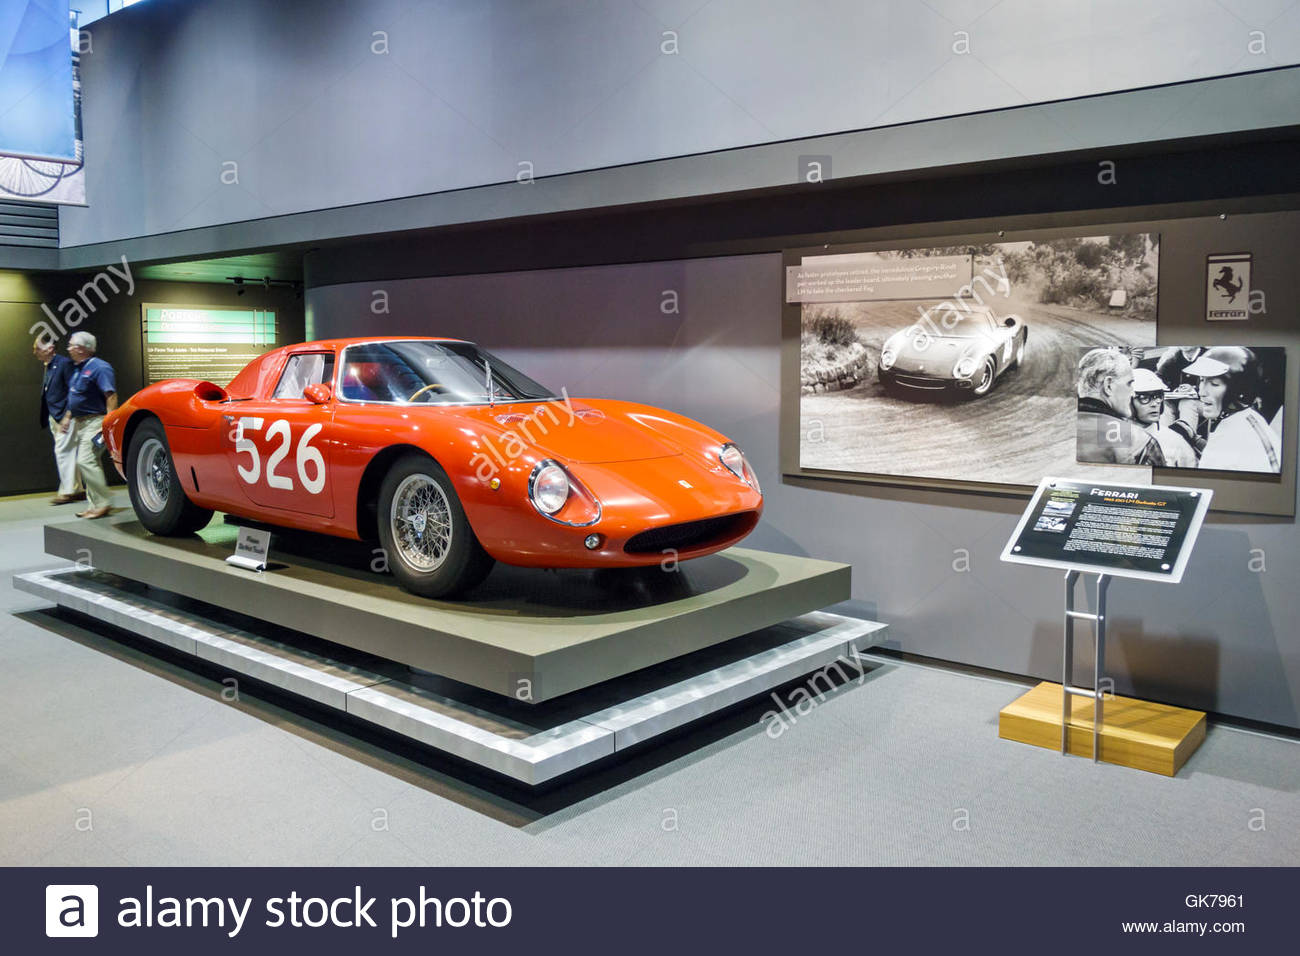 Naples Florida Revs Institute of Automotive Research automotive car museum Miles Collier private collection rare Stock Photo